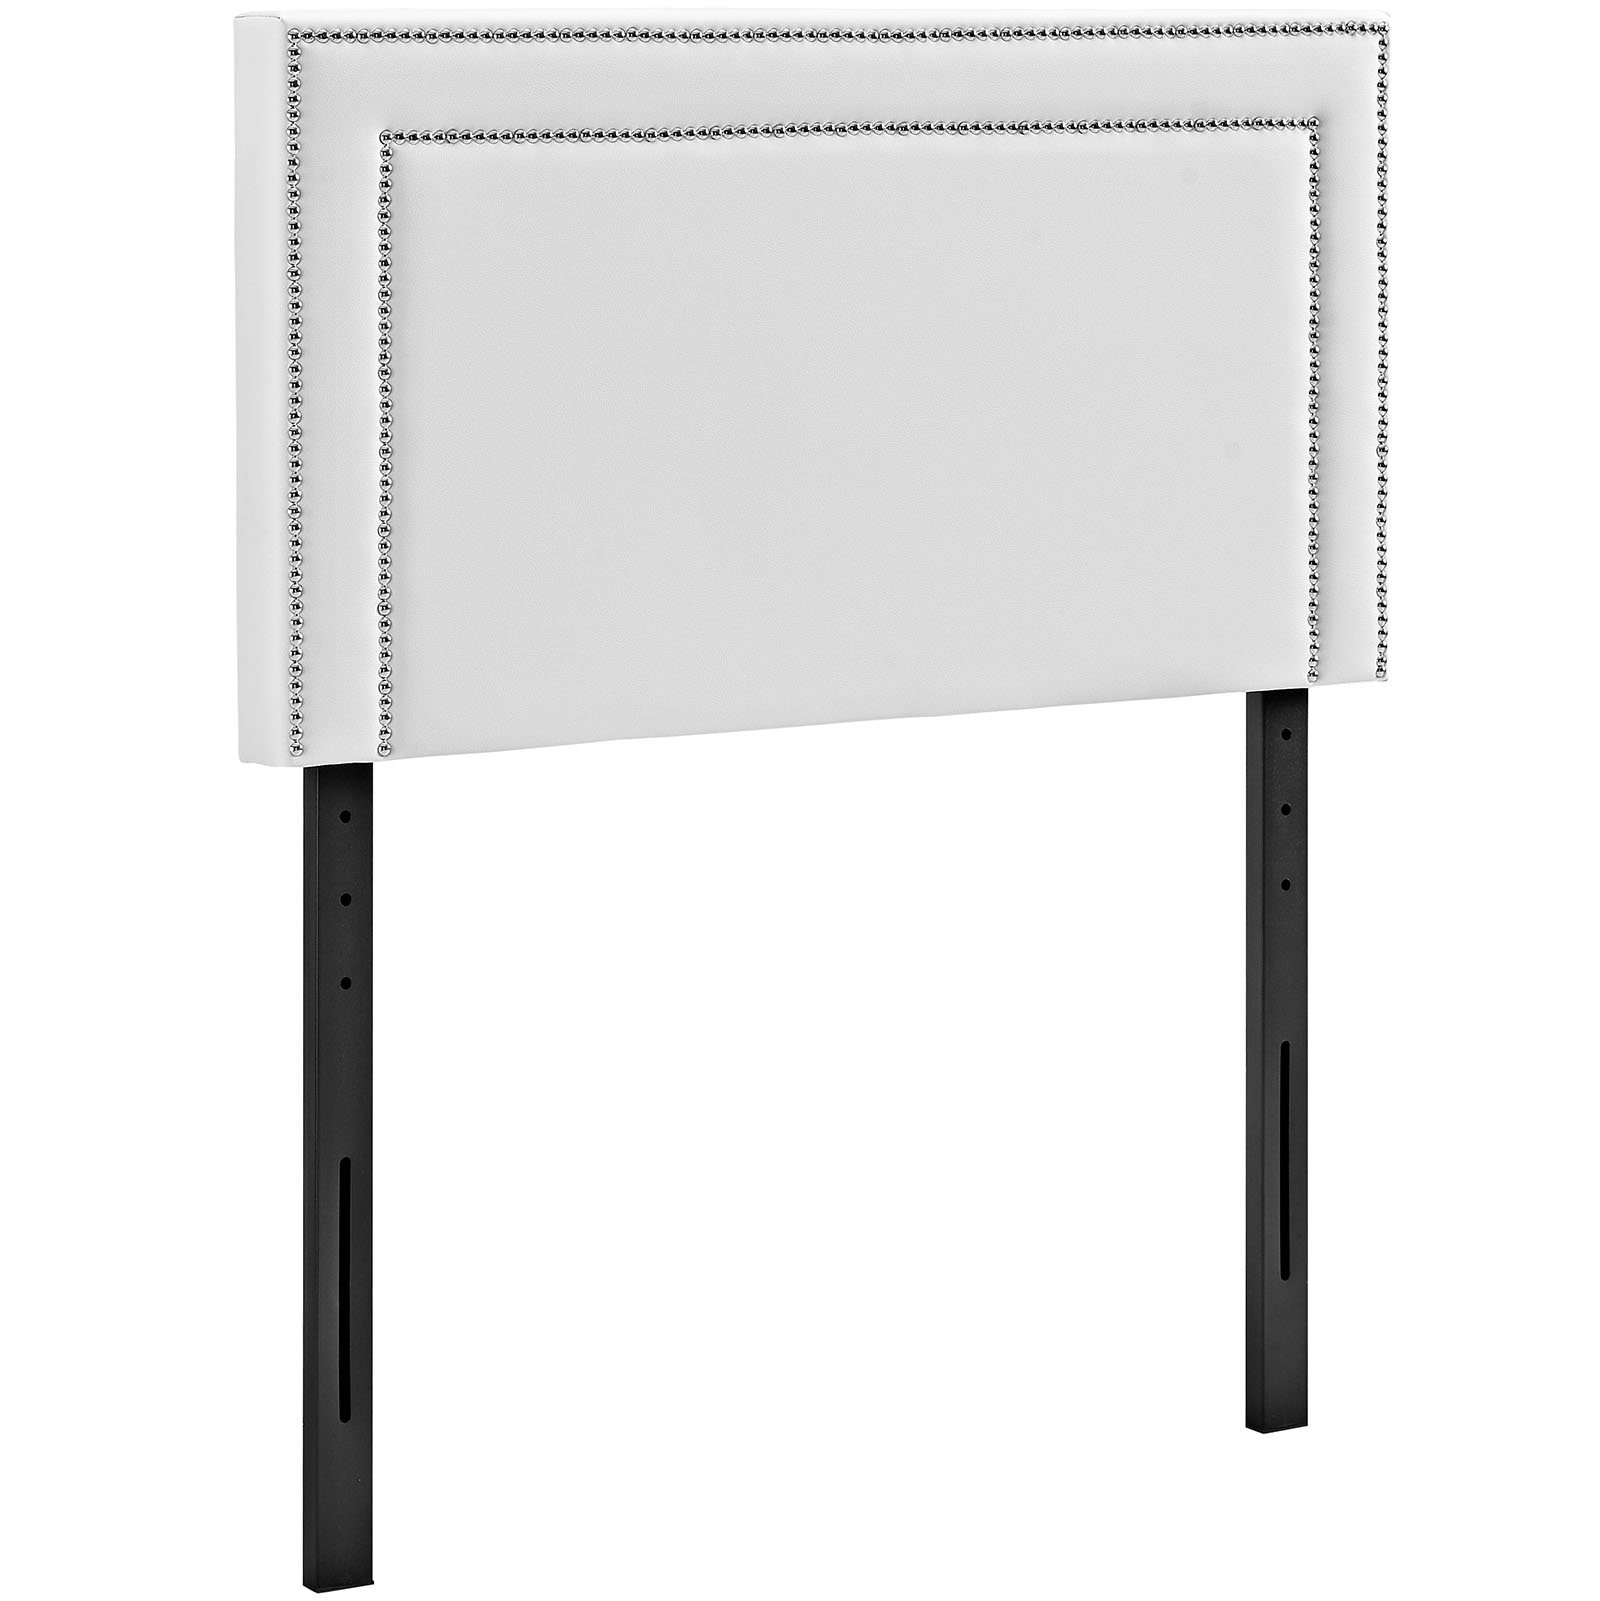 Modway Jessamine Faux Leather Upholstered Twin Headboard in White with Nailhead Trim